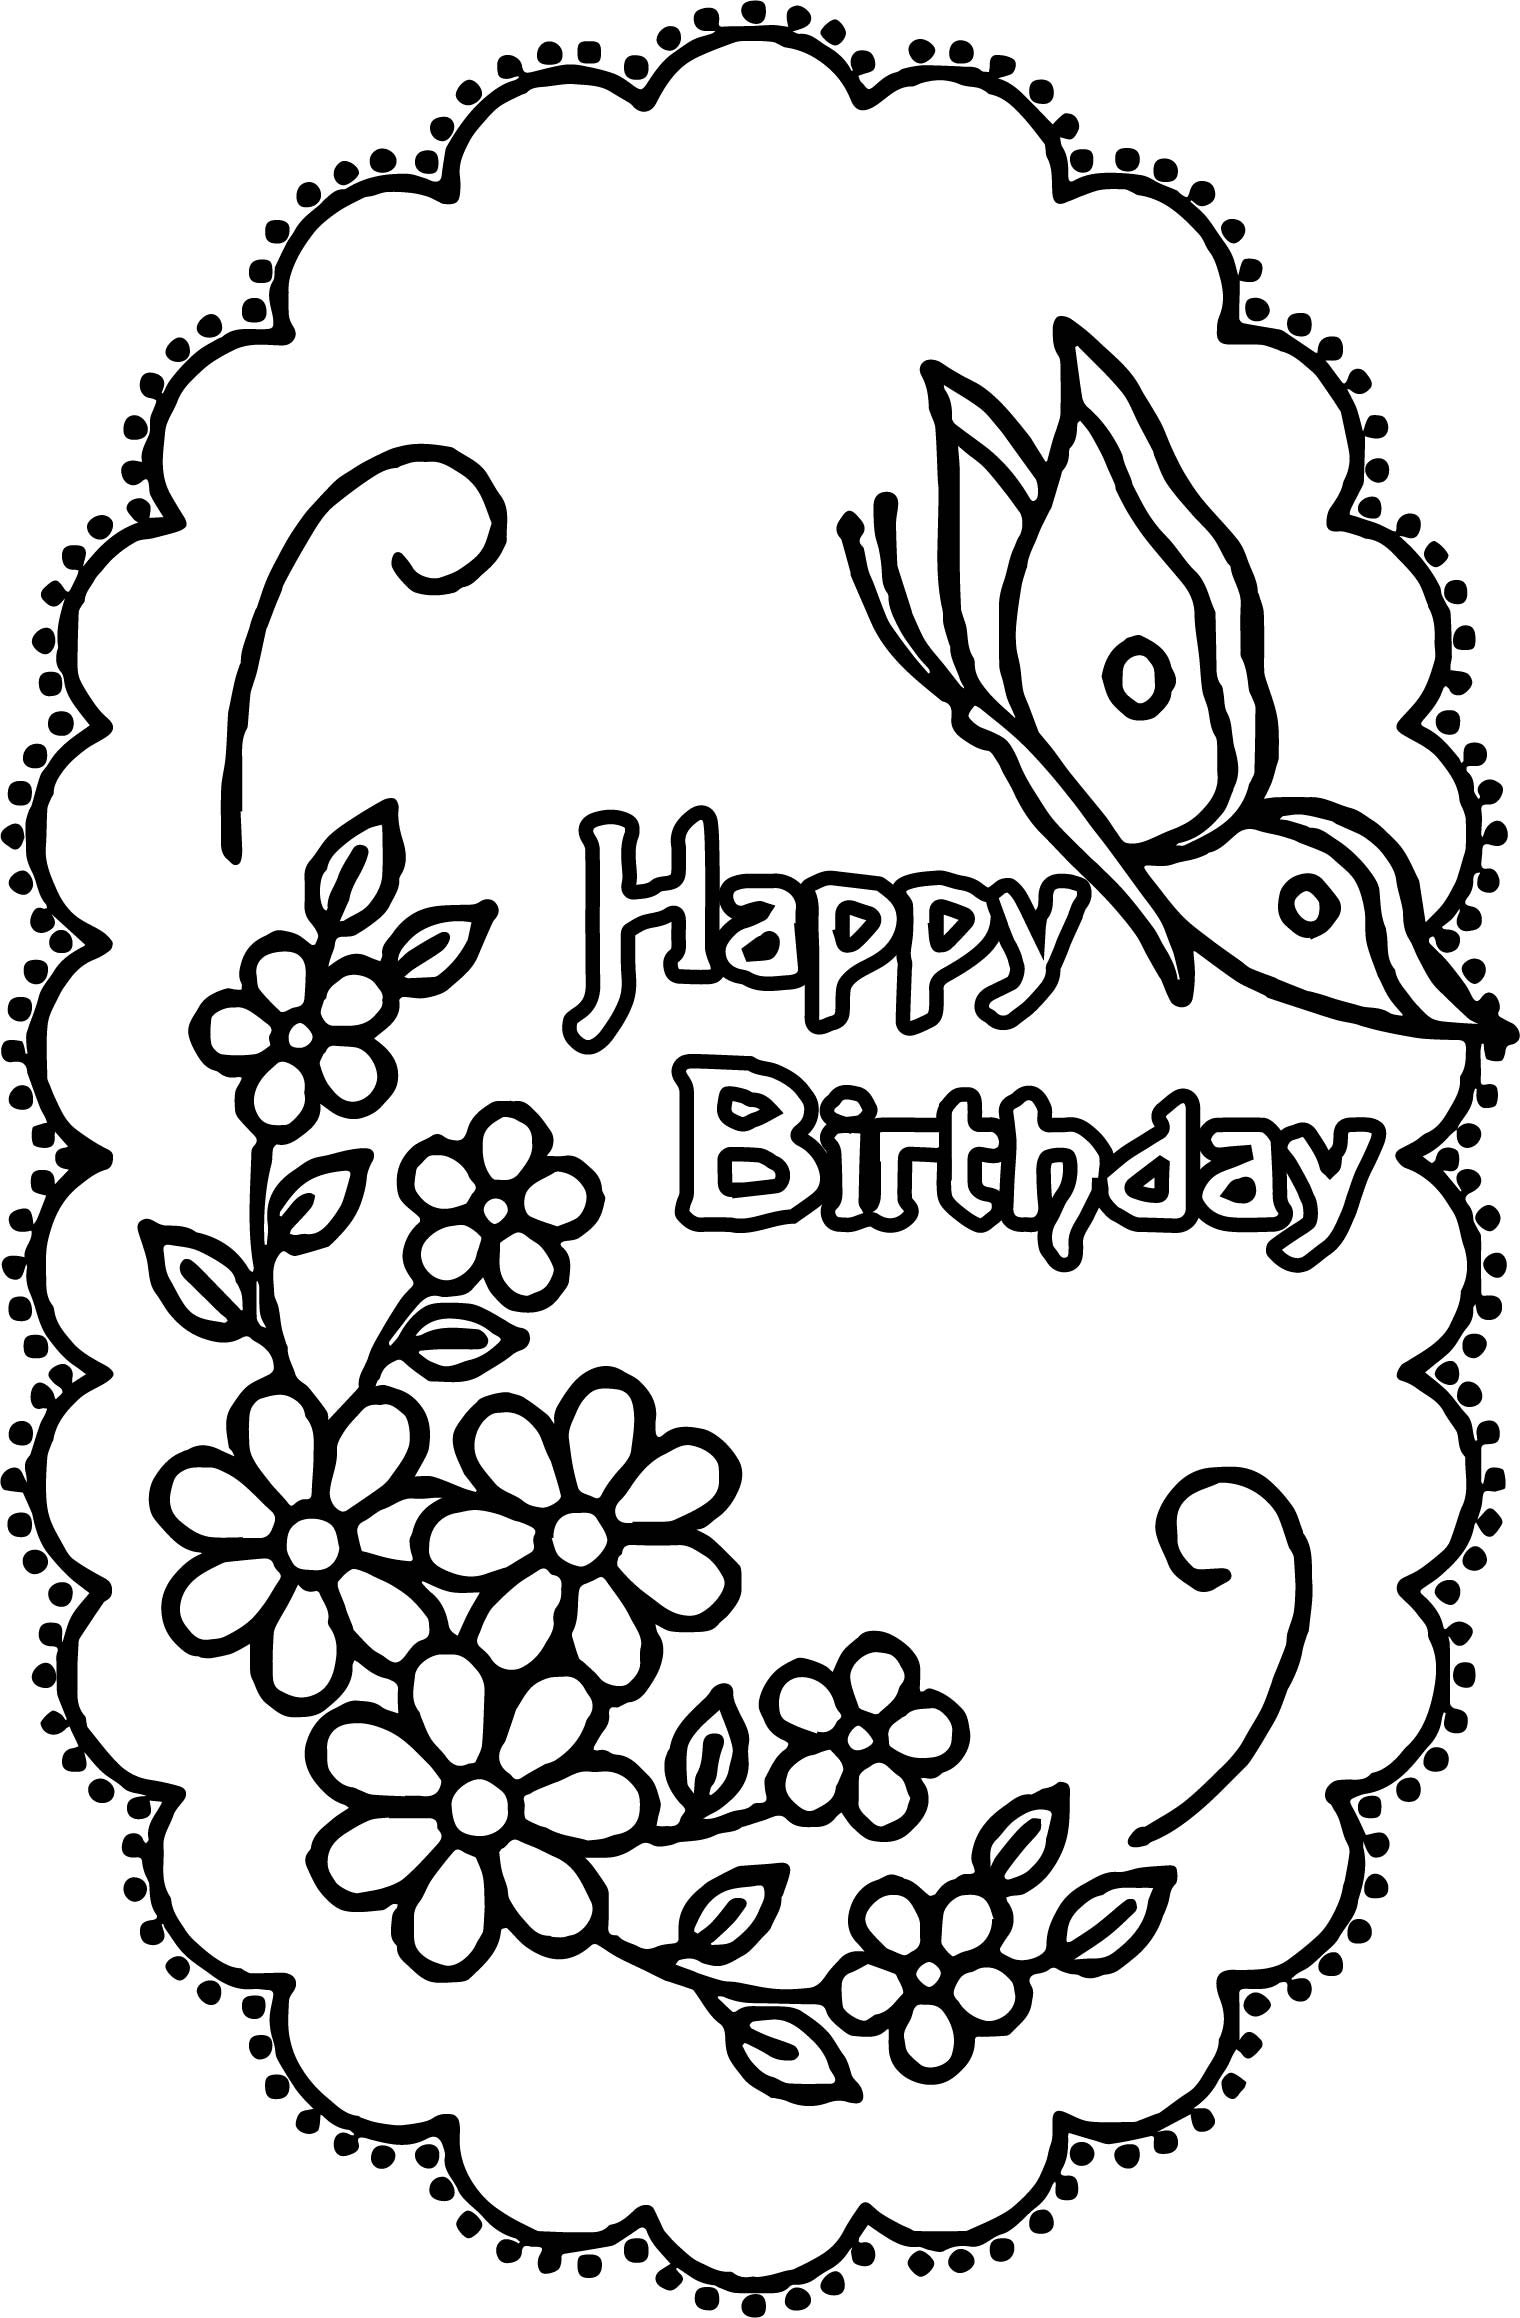 happy birthday coloring sign ; Happy-Birthday-Flower-Butterfly-Coloring-Page